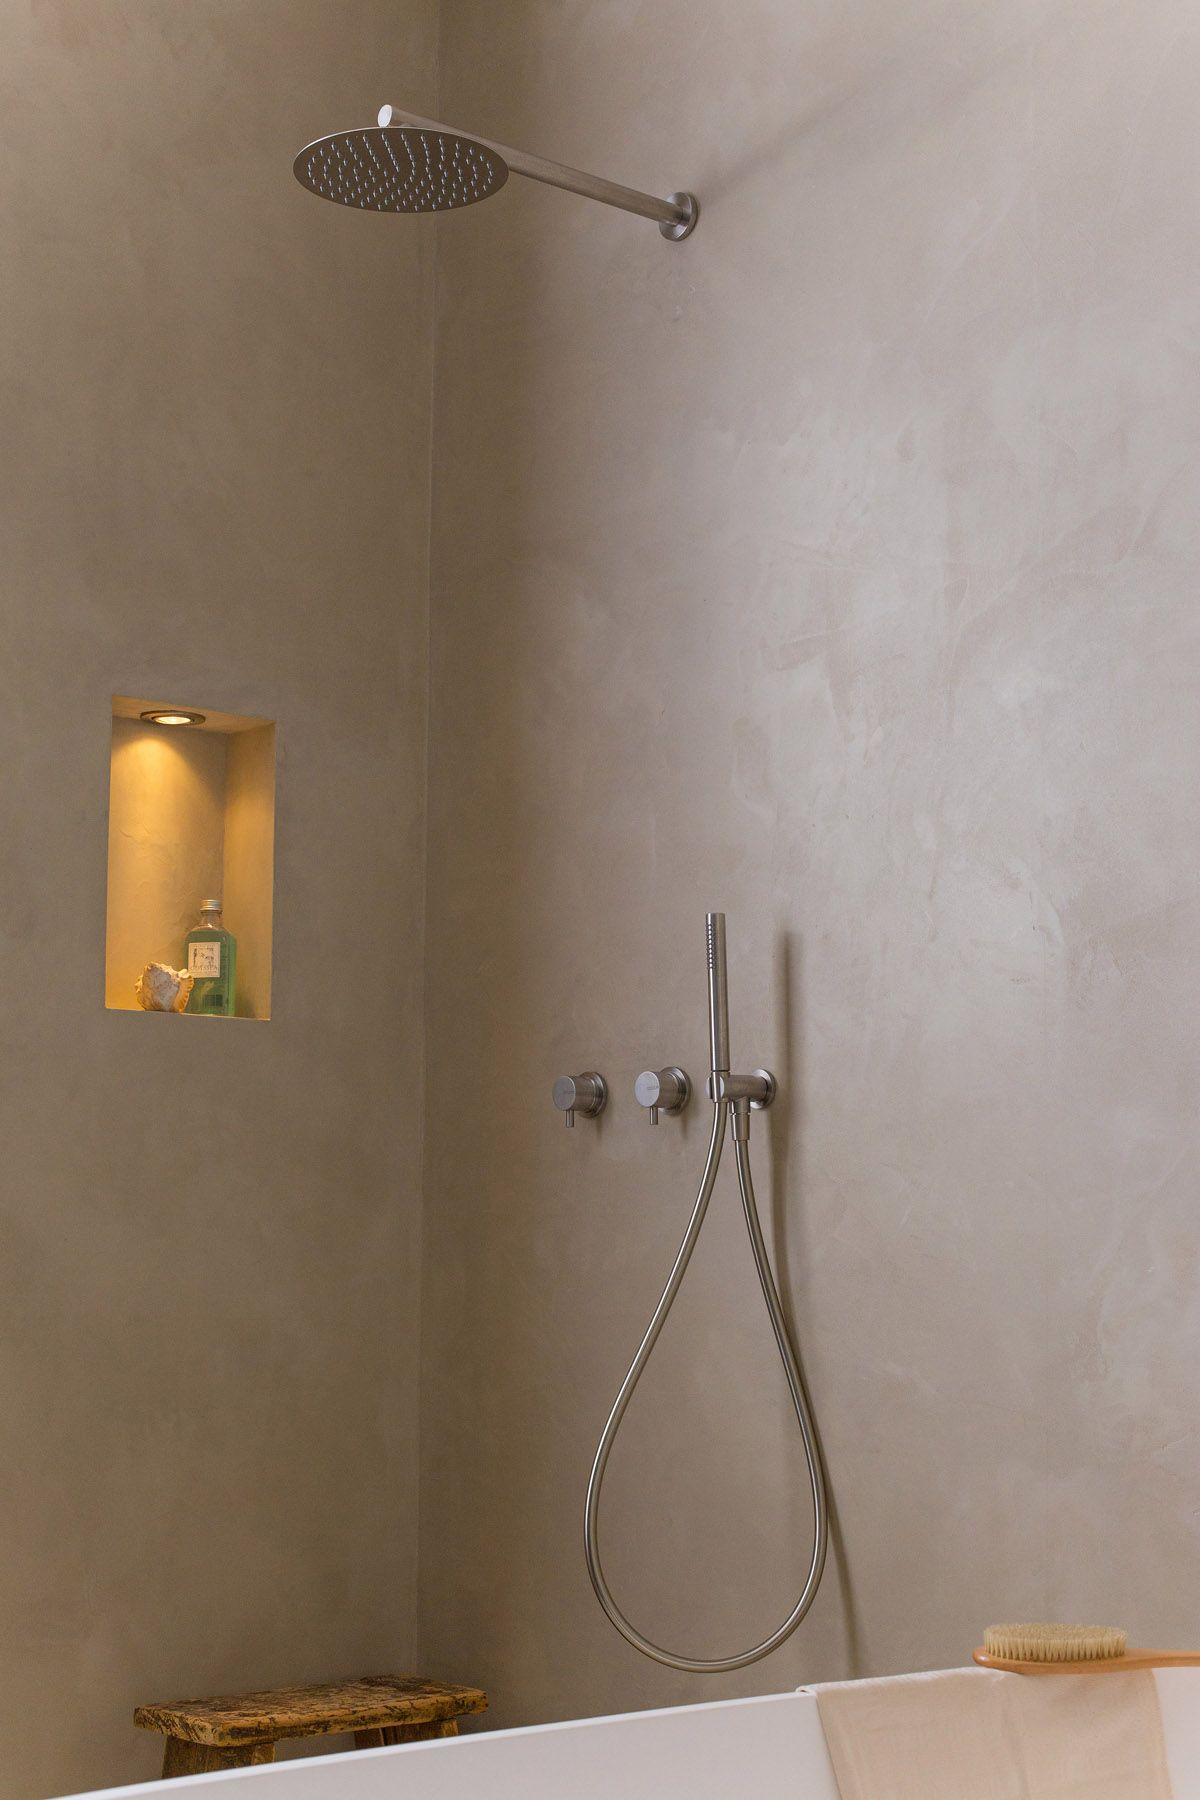 Bathrooms Without Tiles Cocoon Bathroom Taps Modern Bathroom With Inox Bathroom Taps